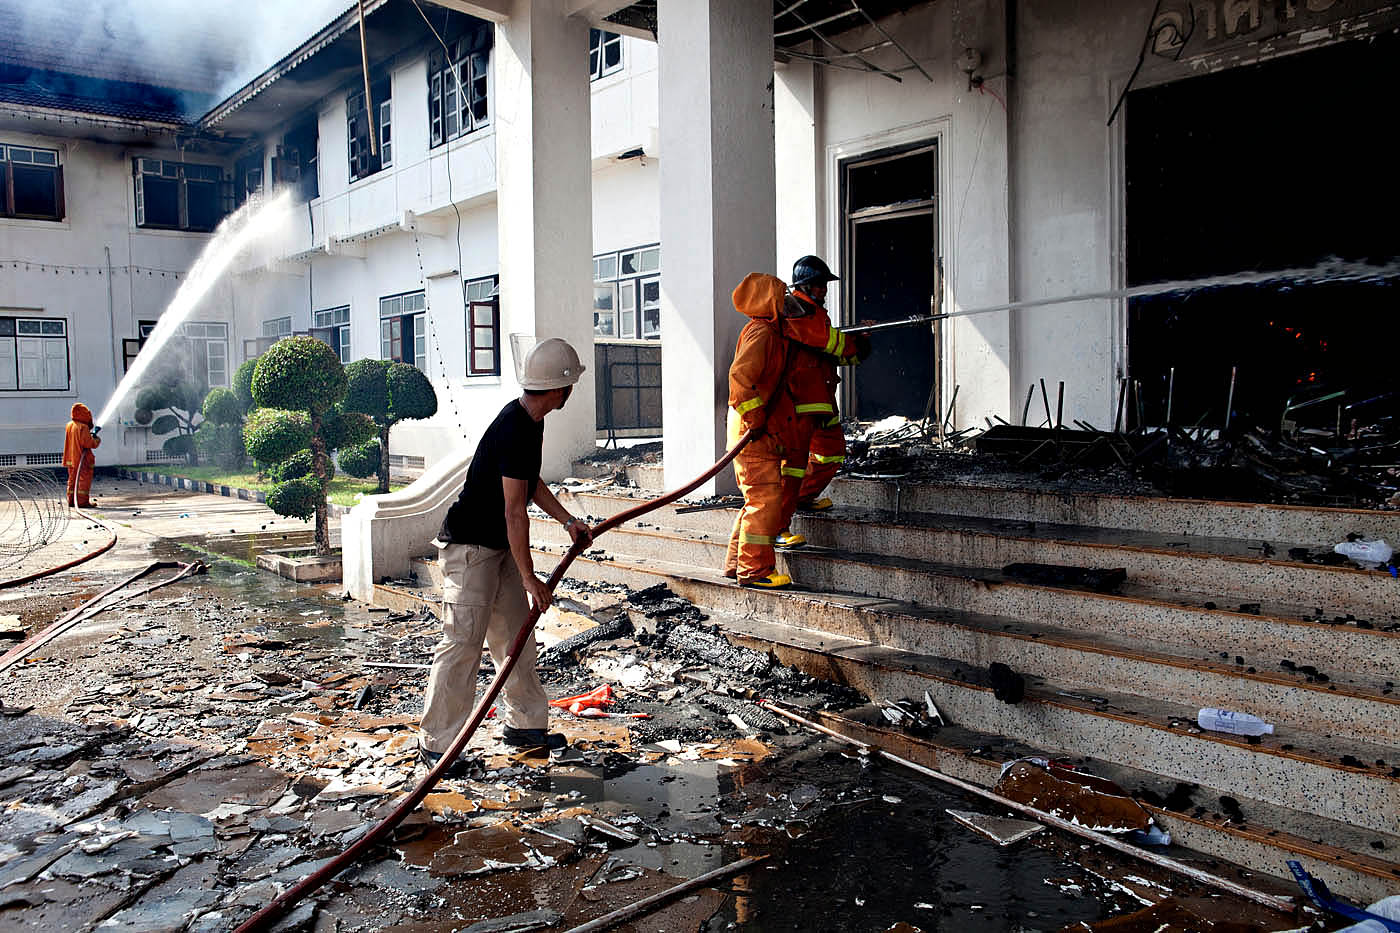 Udon Thani, Thailand. Firefighters spray water on a government office Wednesday, May 19, 2010, following a riot by anti-government protesters. The attack on the Thai government office came after TV showed reports of the crackdown on Red Shirt protesters in Bangkok.